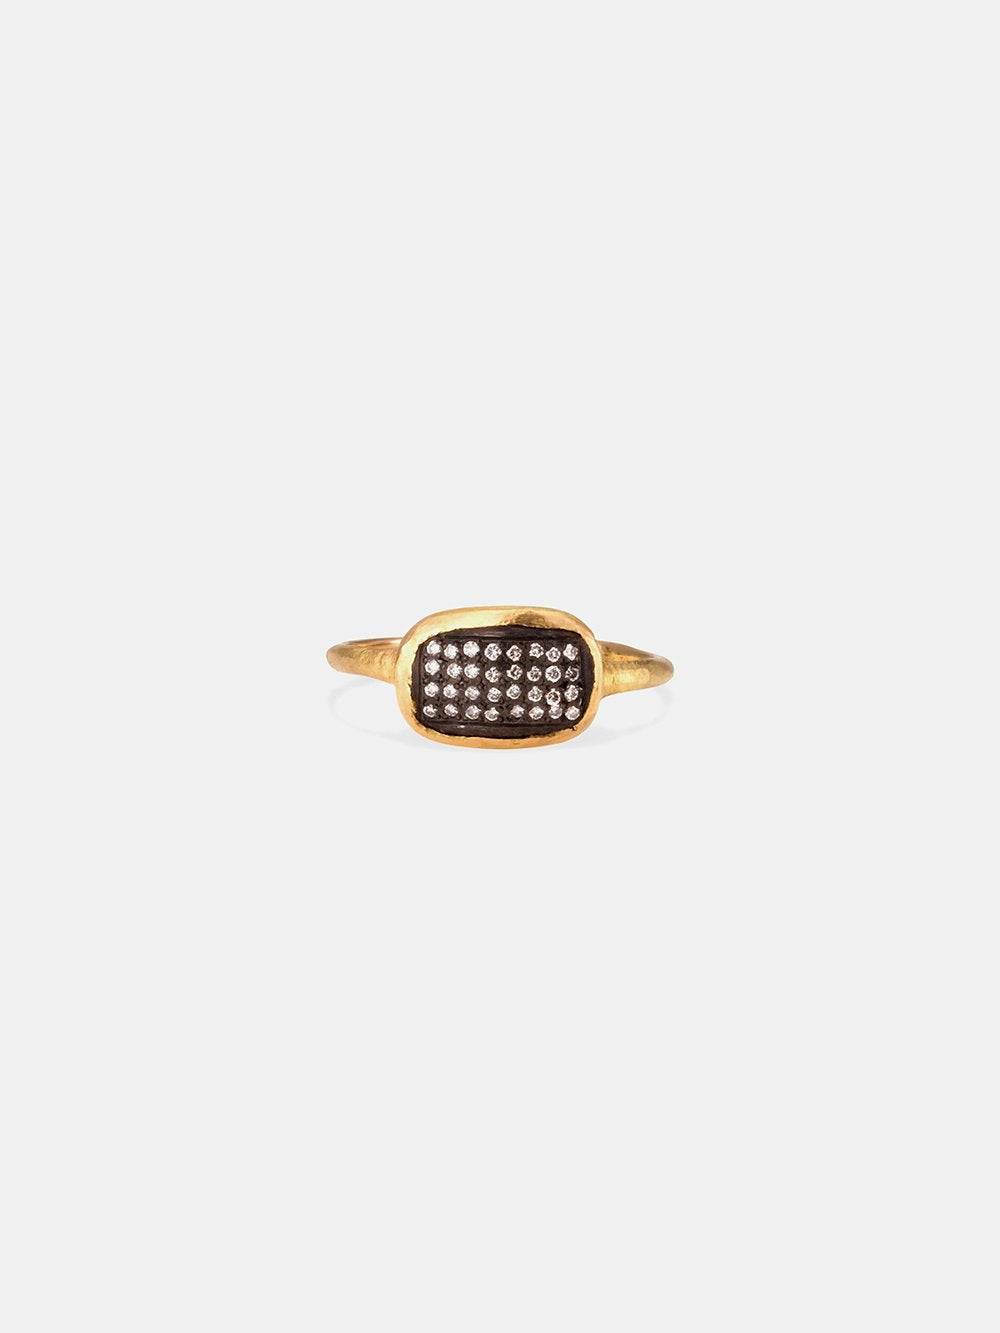 satomi 18k yellow gold ring with oxidized silver + diamonds